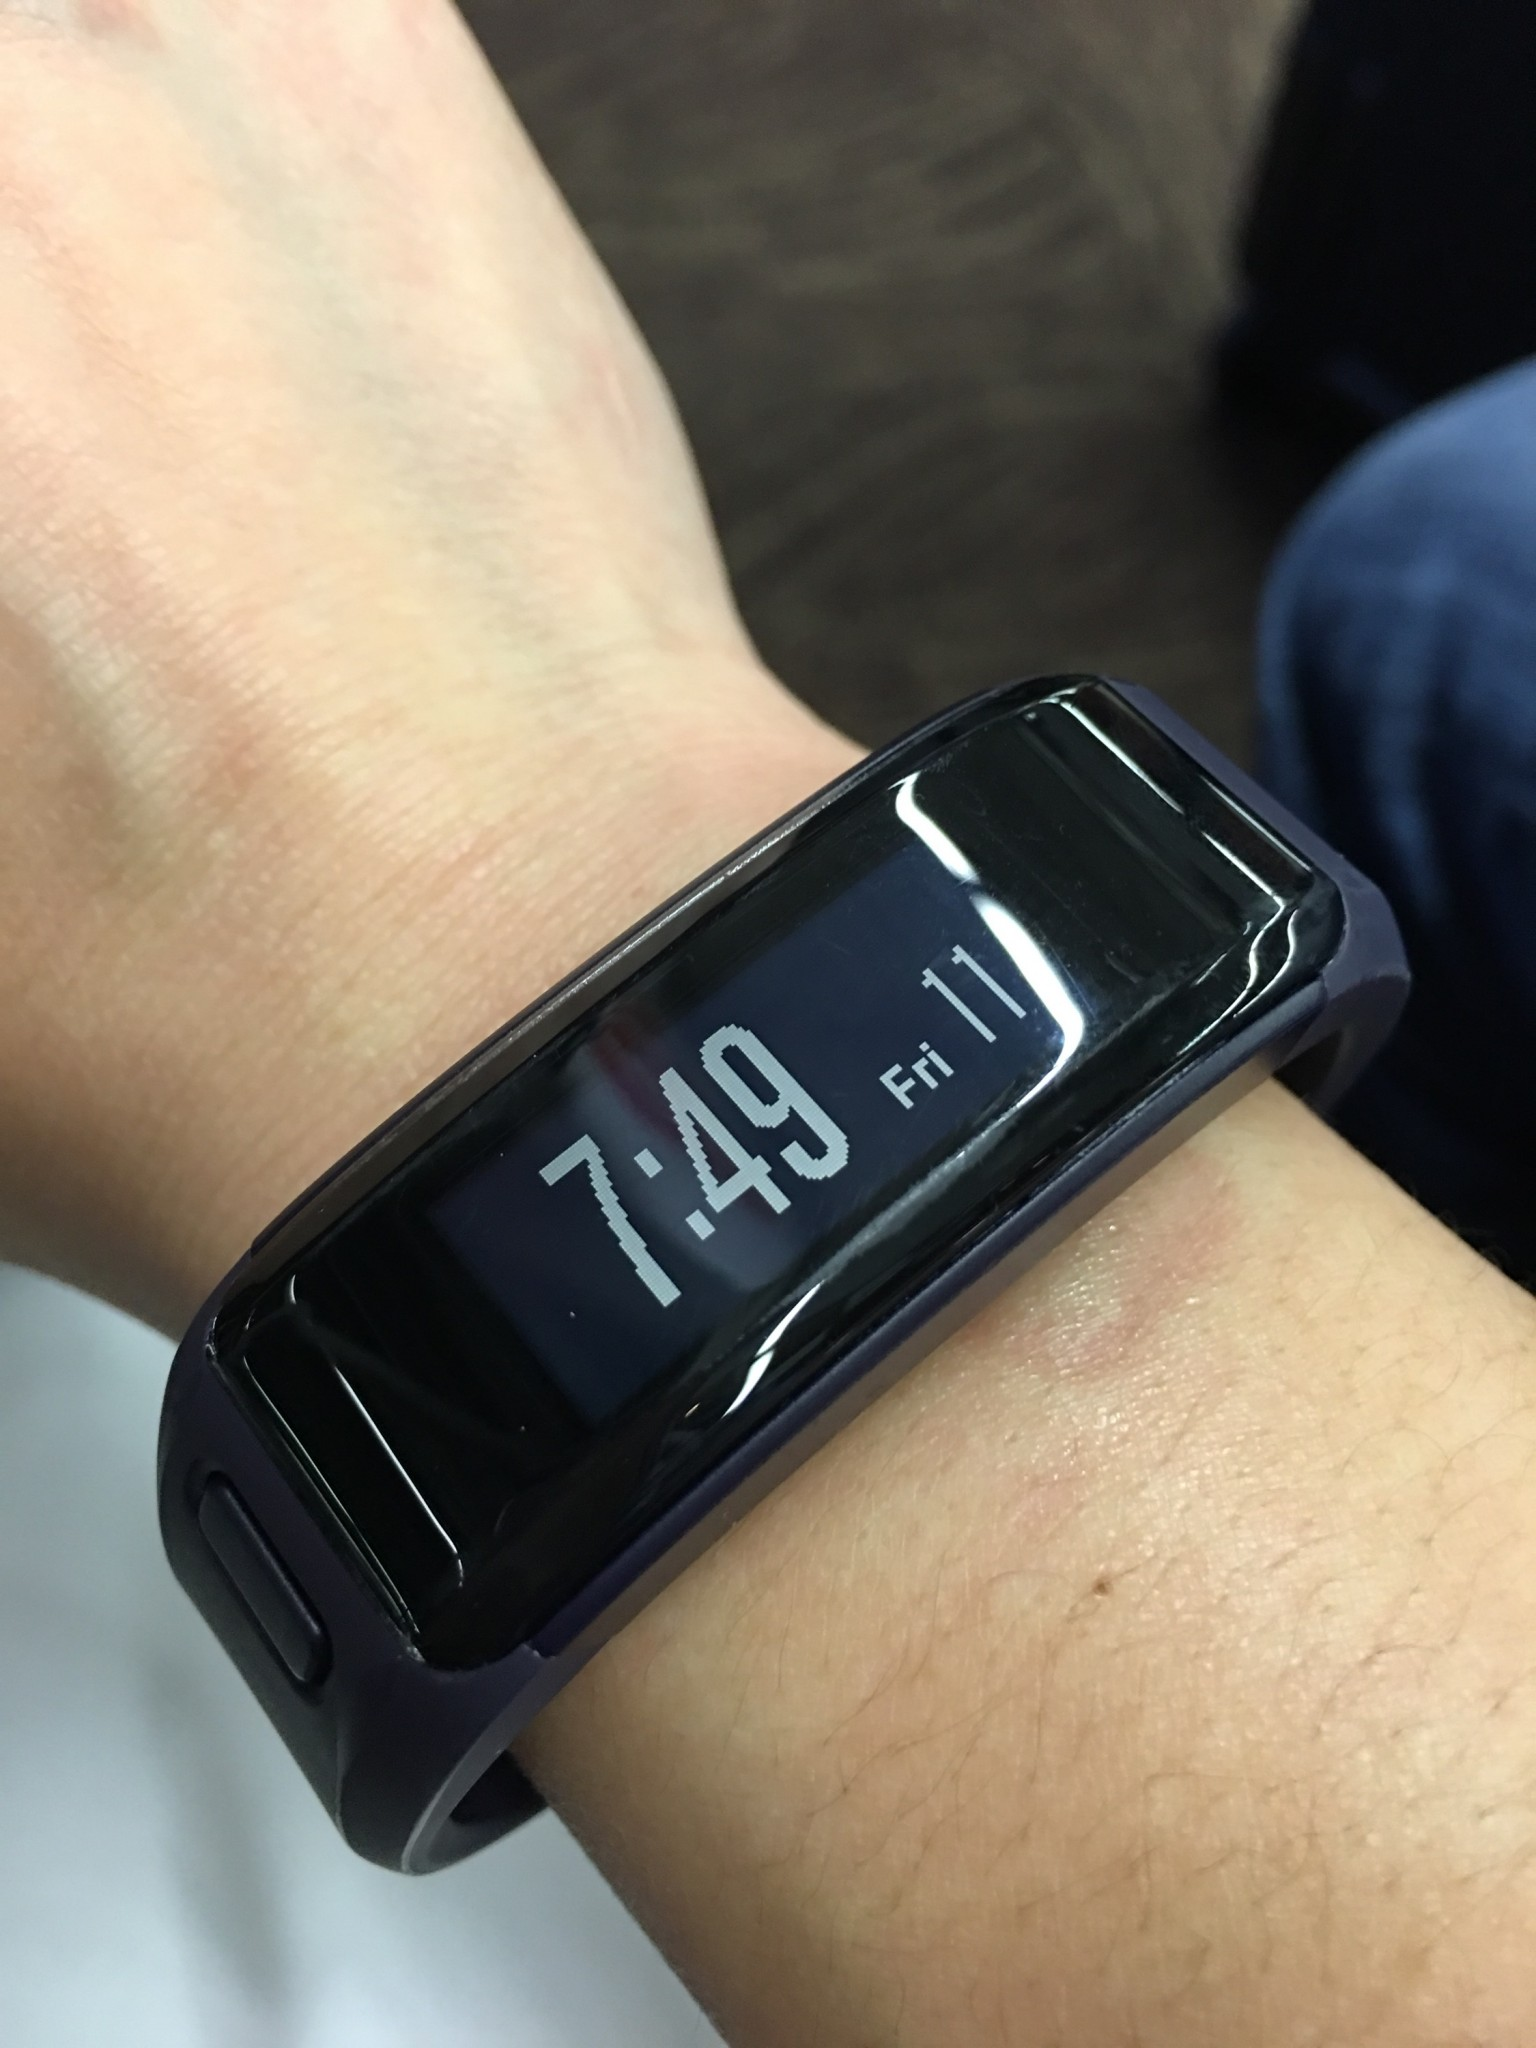 garmin vivosmart hr review